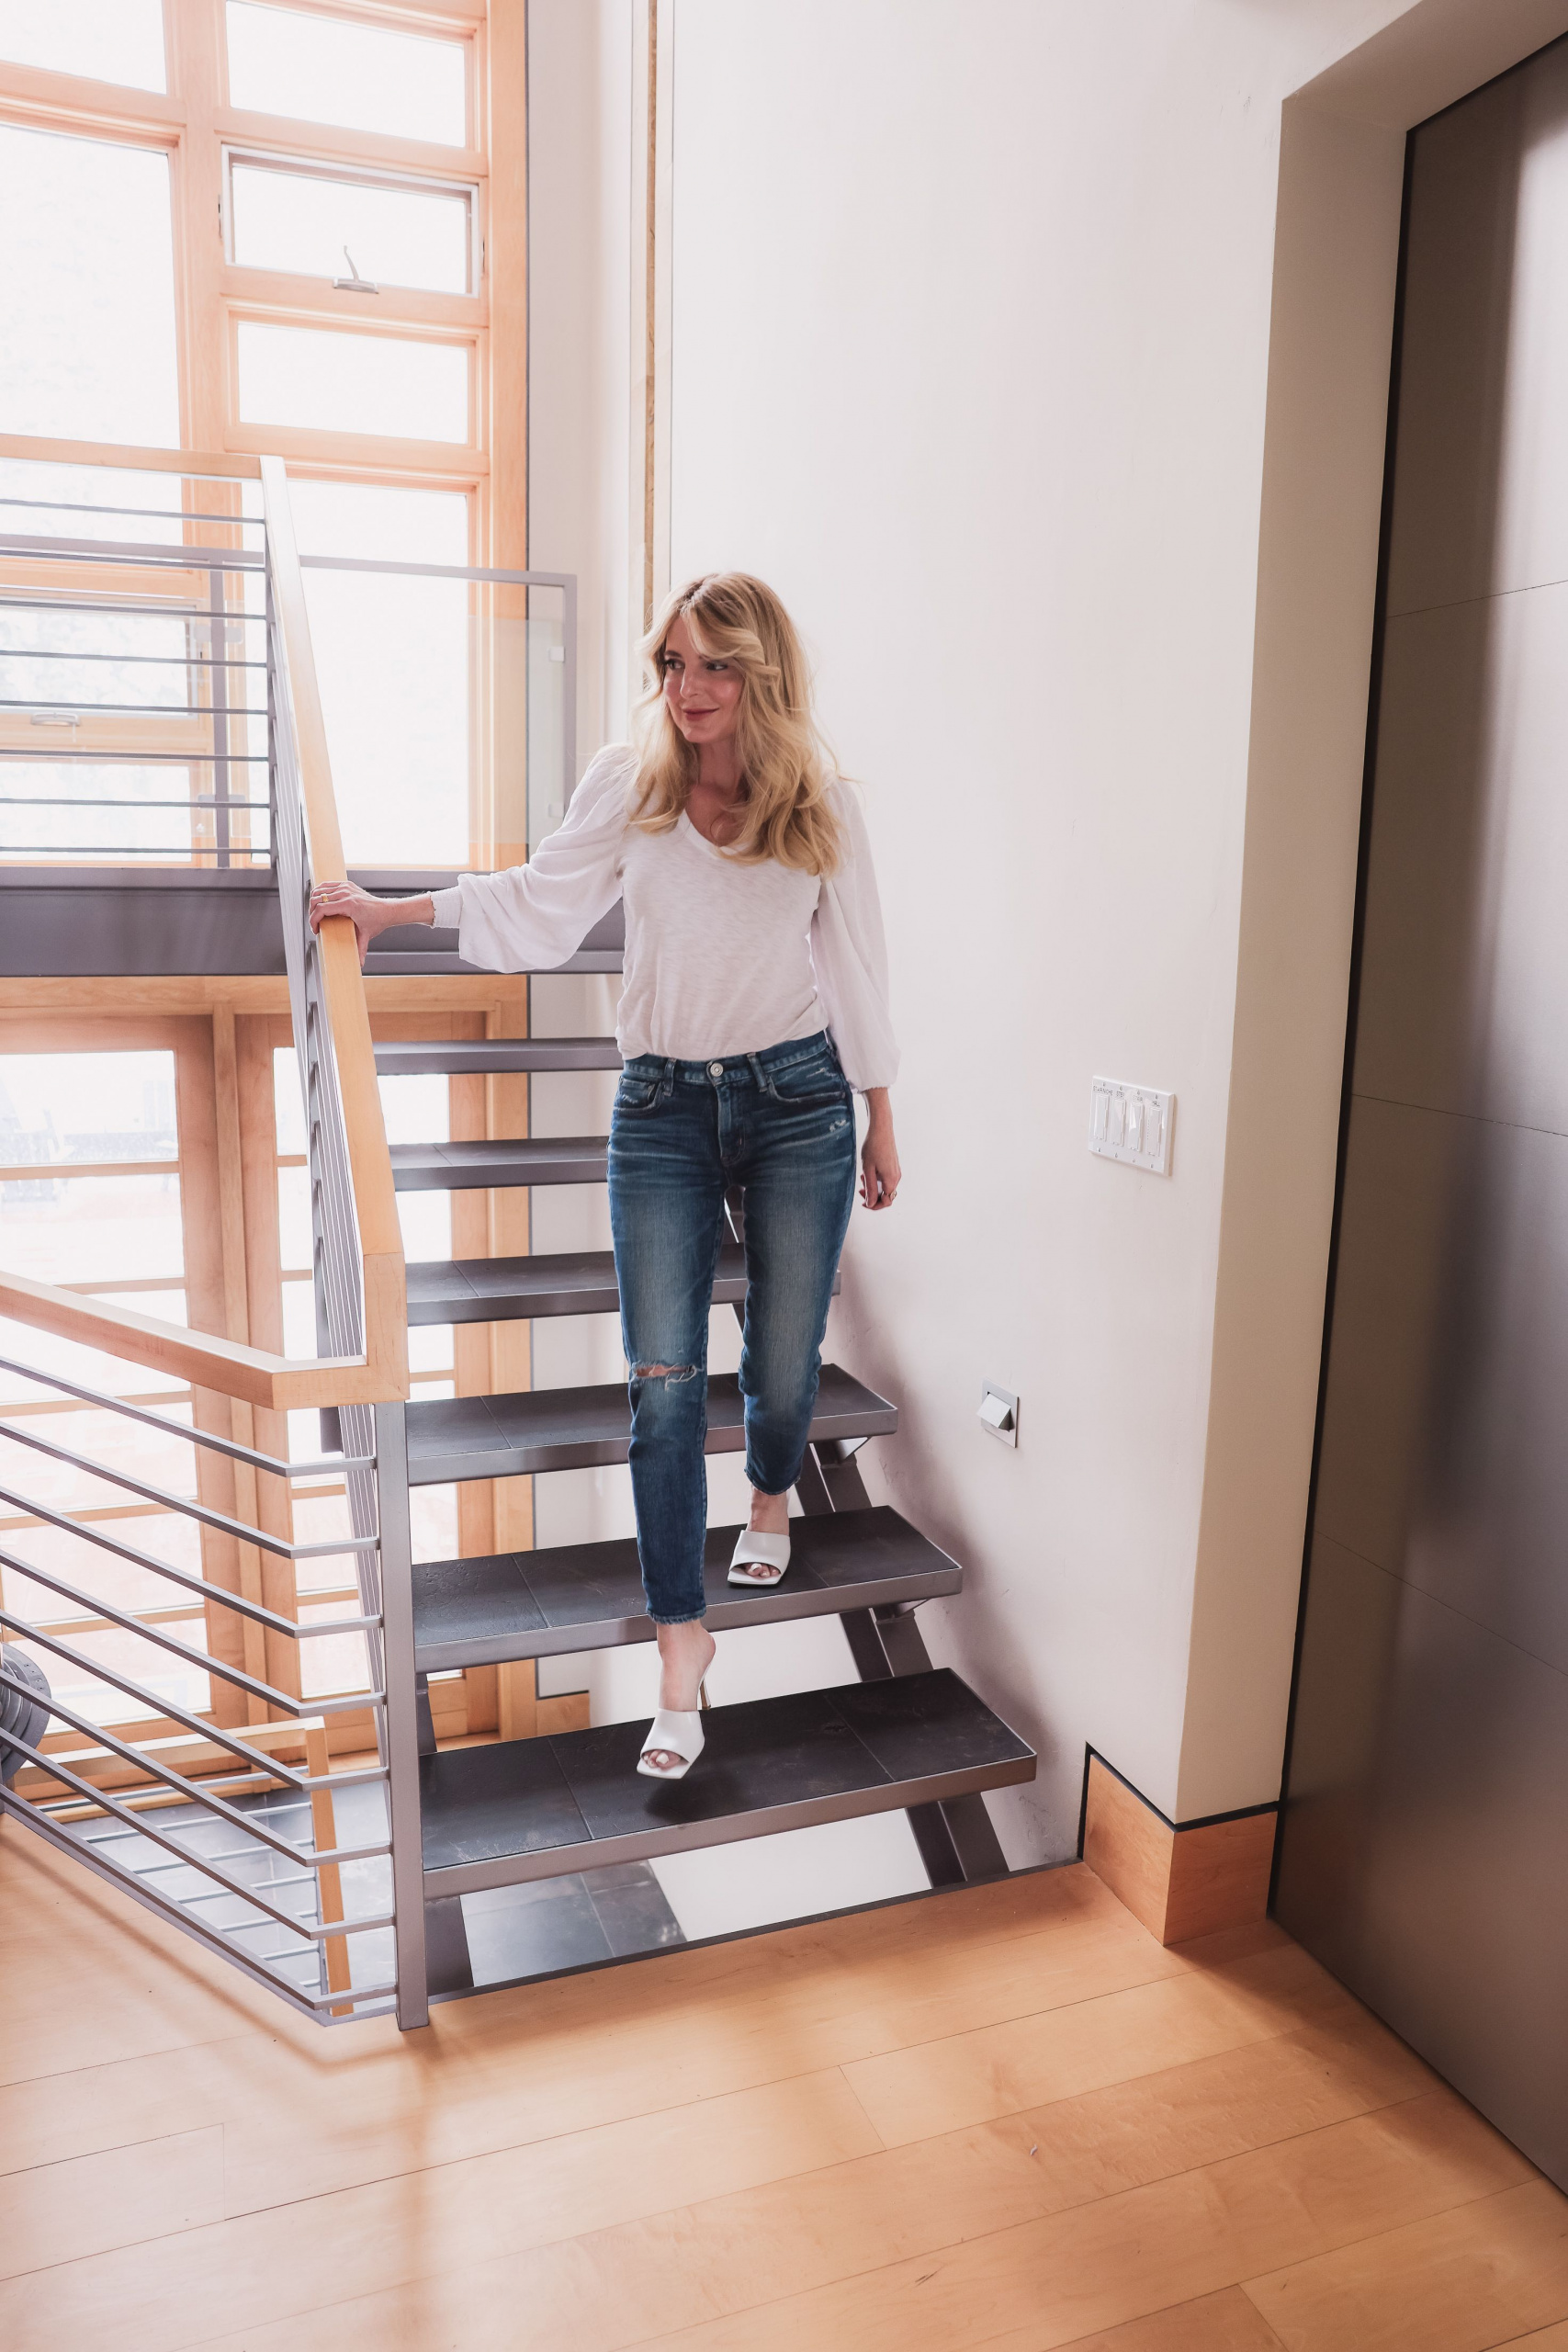 How to look better in photos, Look taller and slimmer in photos, Erin Busbee style blogger, fashion over 40